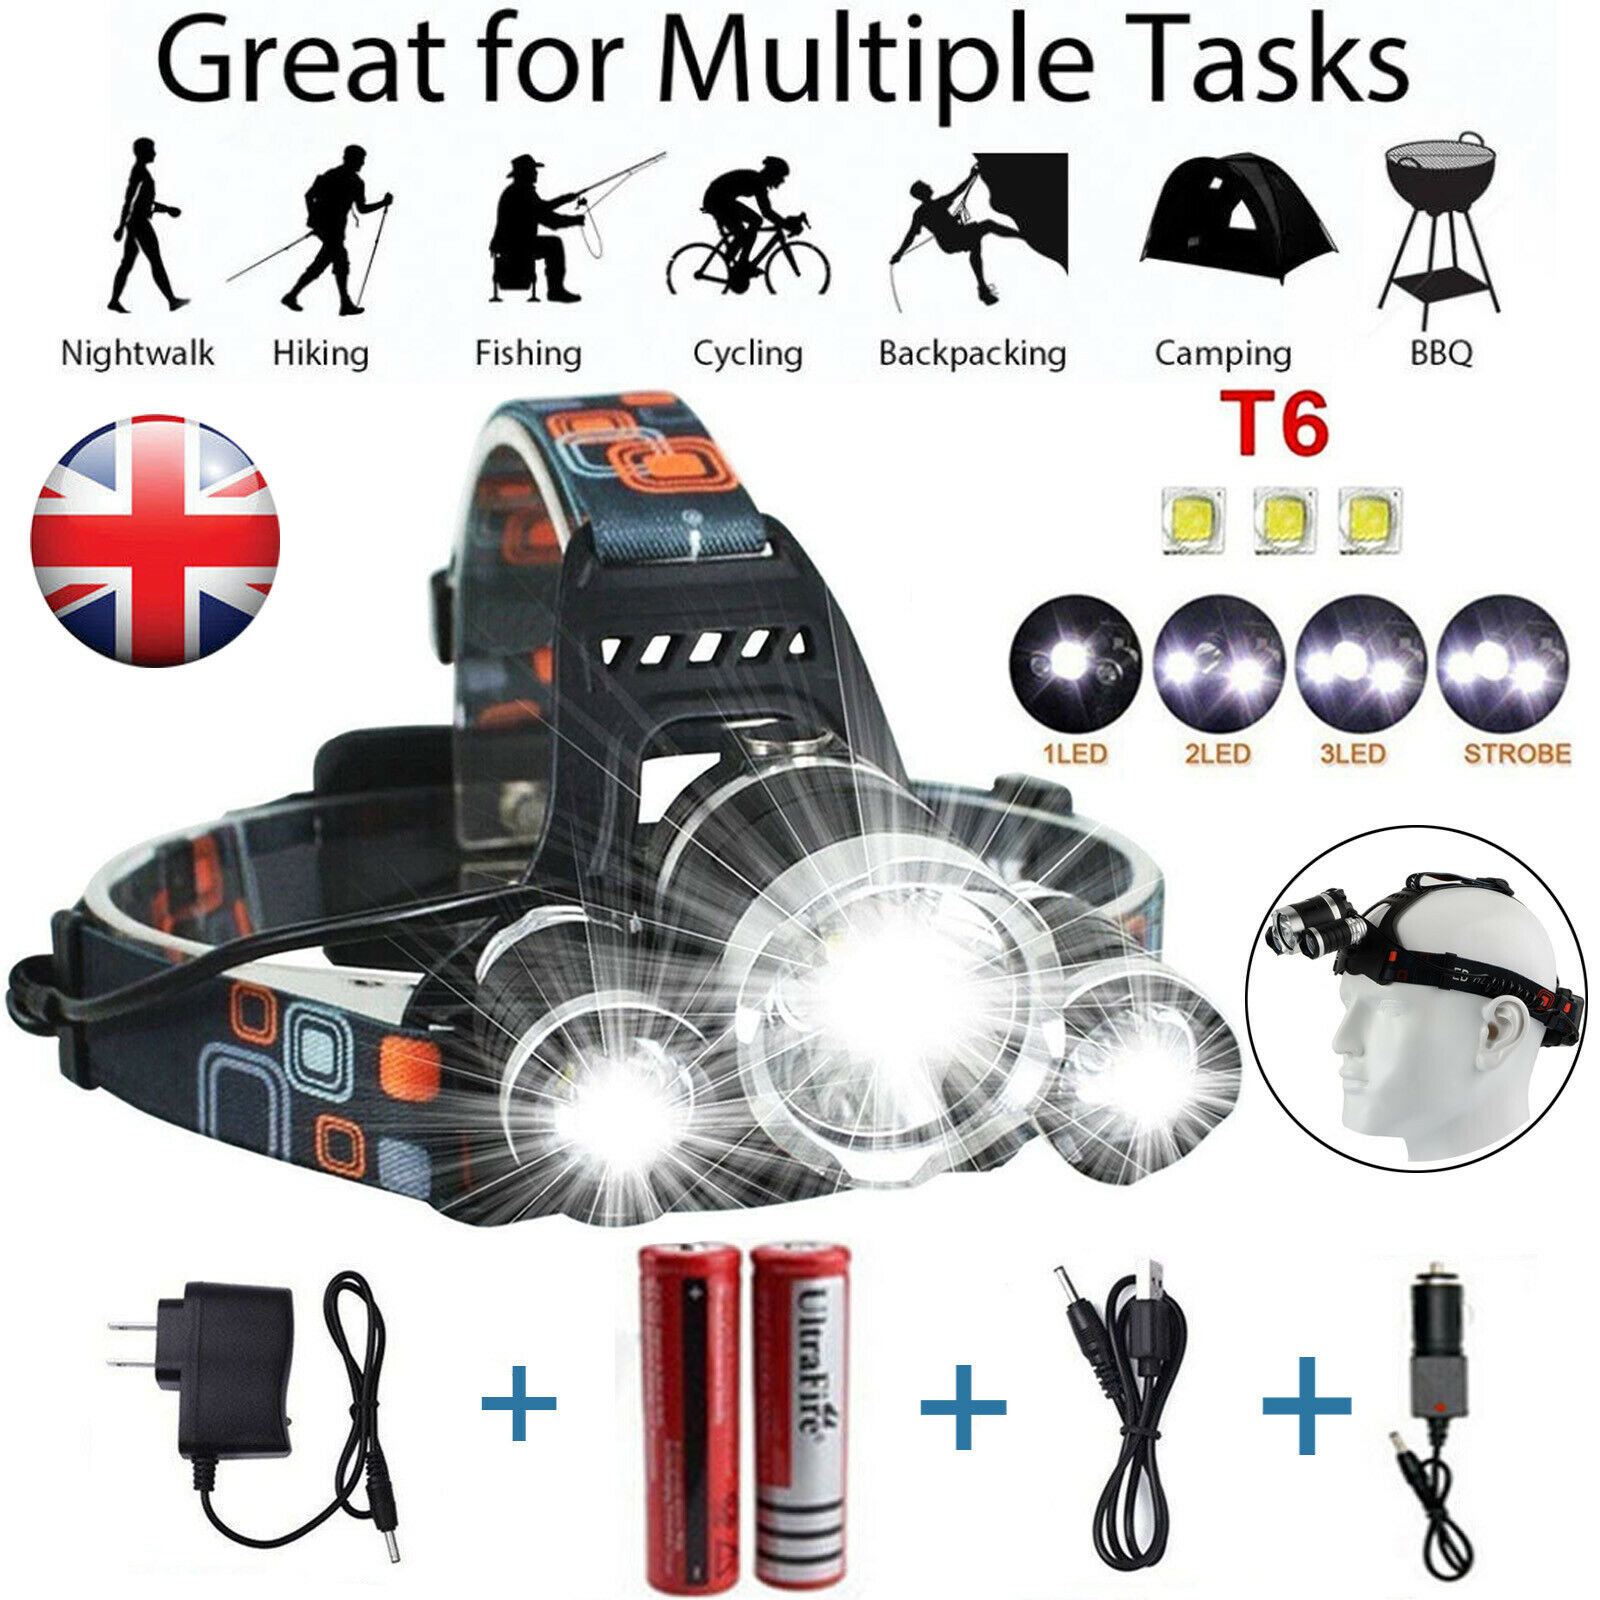 12000 LM Lumens 3X XML CREE T6 LED Rechargeable Head Torches Headlamp Lamp Light